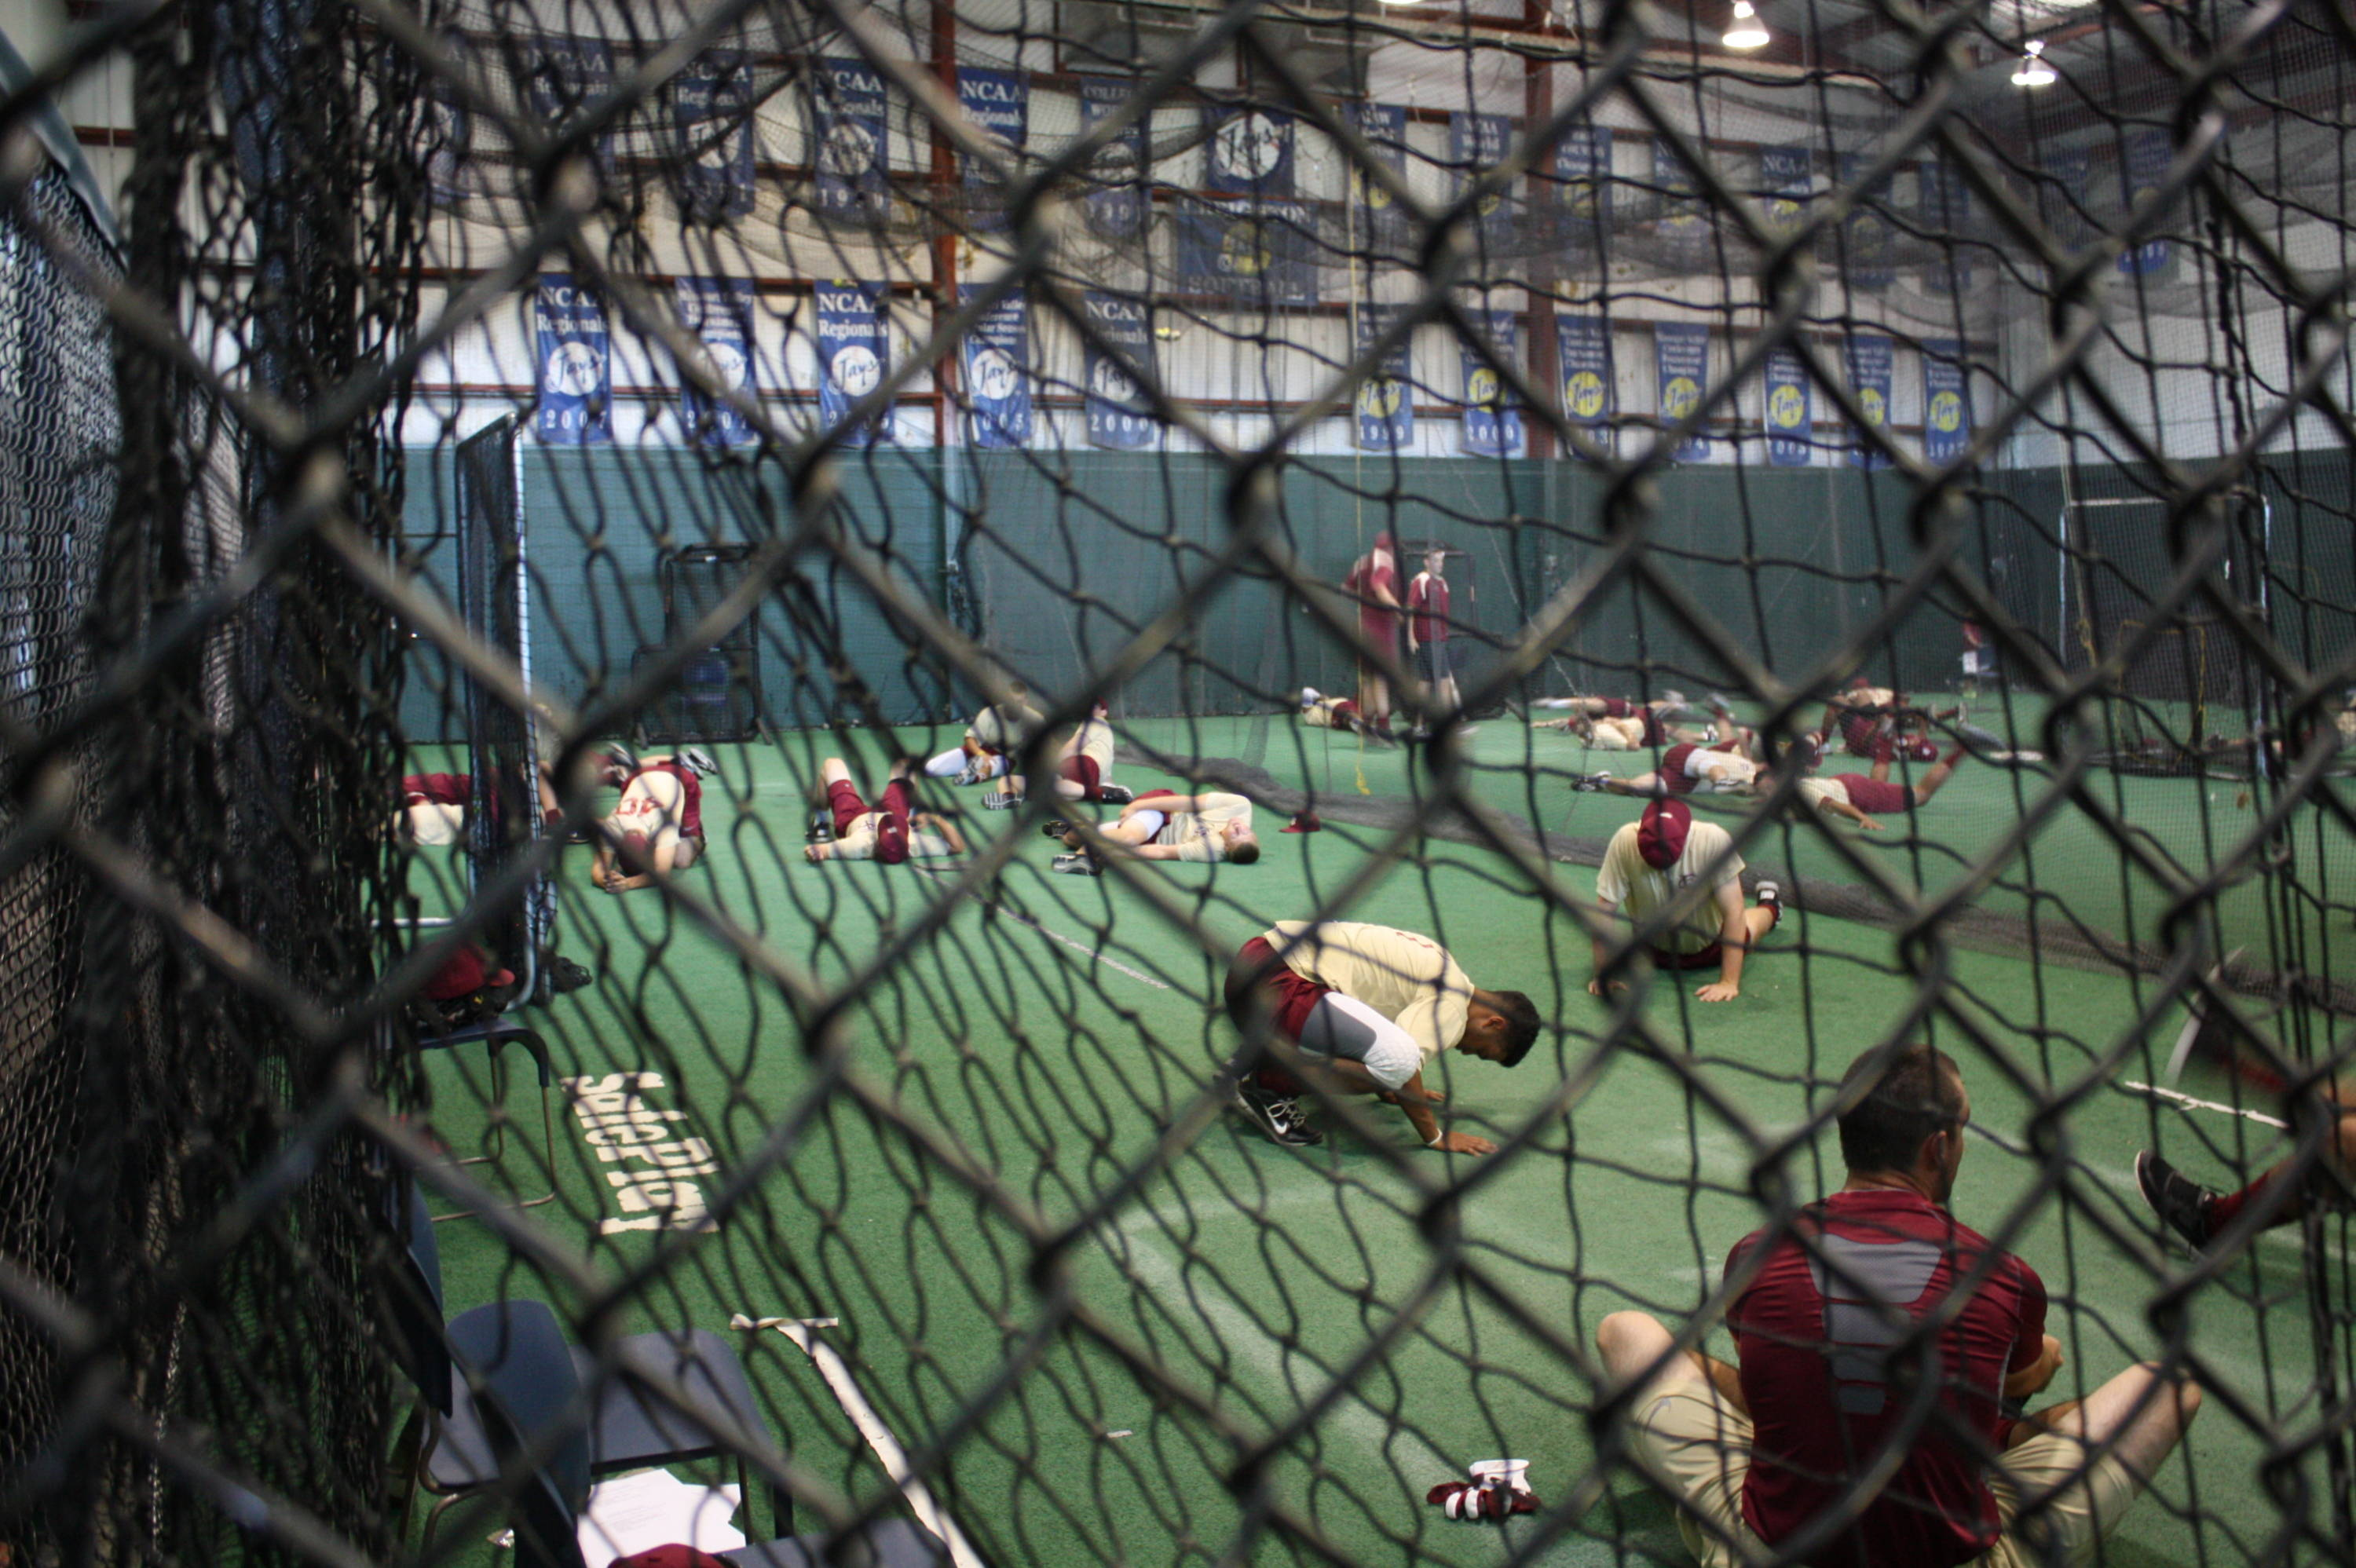 The Seminoles stretching before the start of practice inside the Creighton indoor hitting facility.